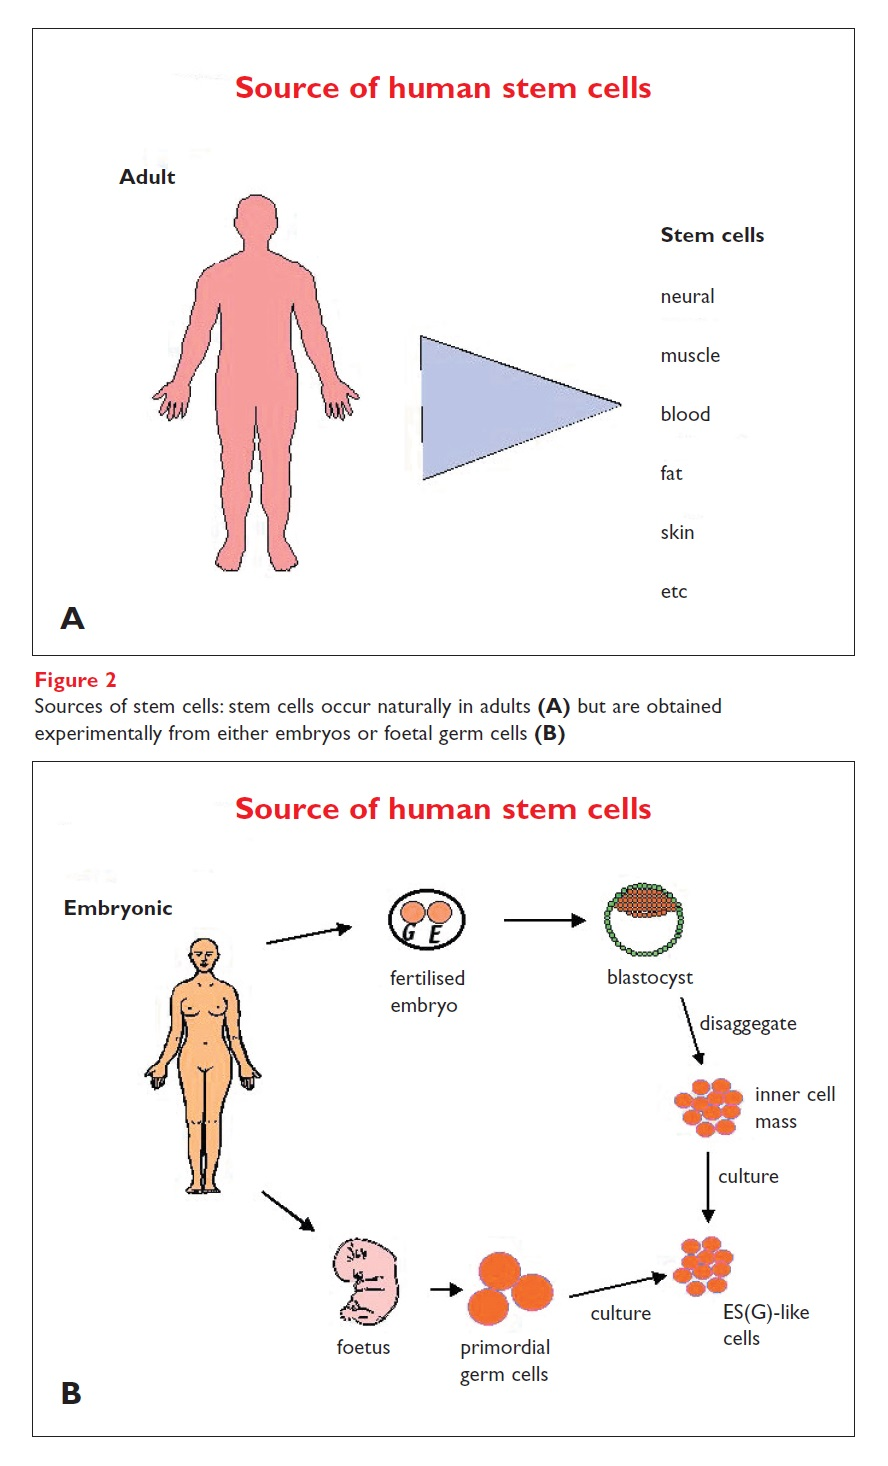 Figure 2 Sources of stem cells: stem cells occur narually in adults but are obtained from either embryos or foetal germ cells